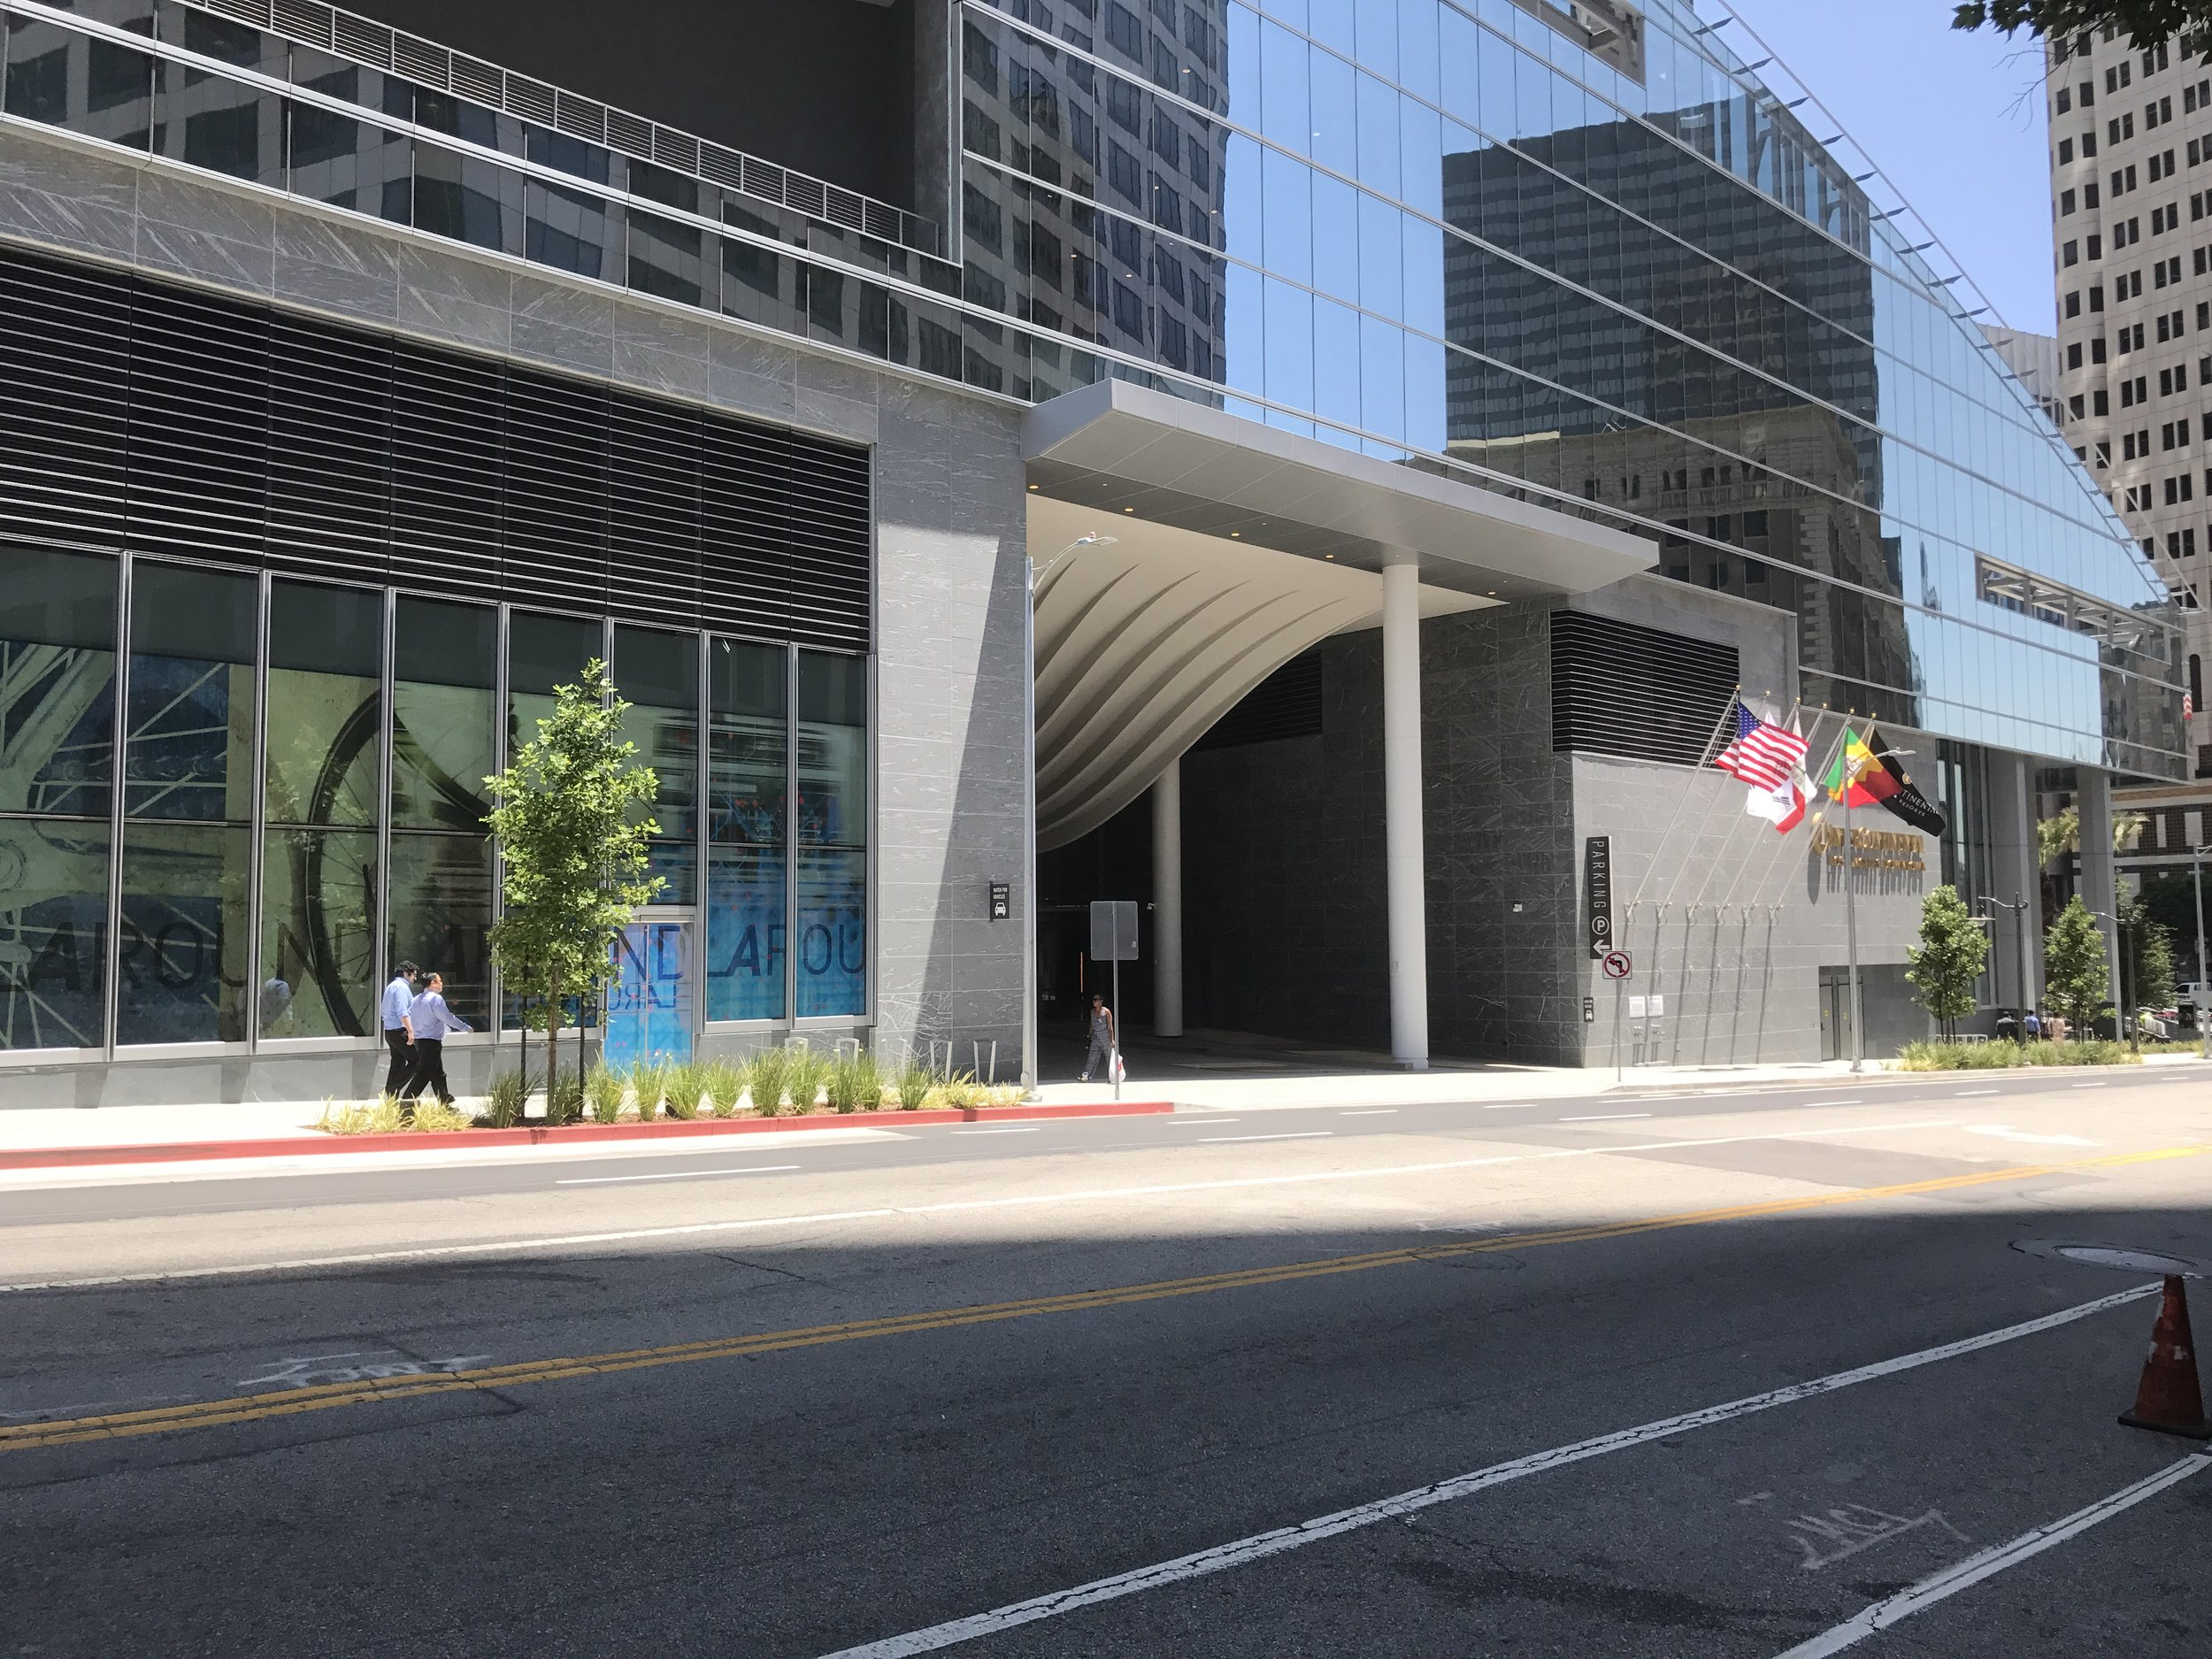 The 7th Street facade at Wilshire Grand Center. Only the driveway for the hotel interrupts the long blank wall.